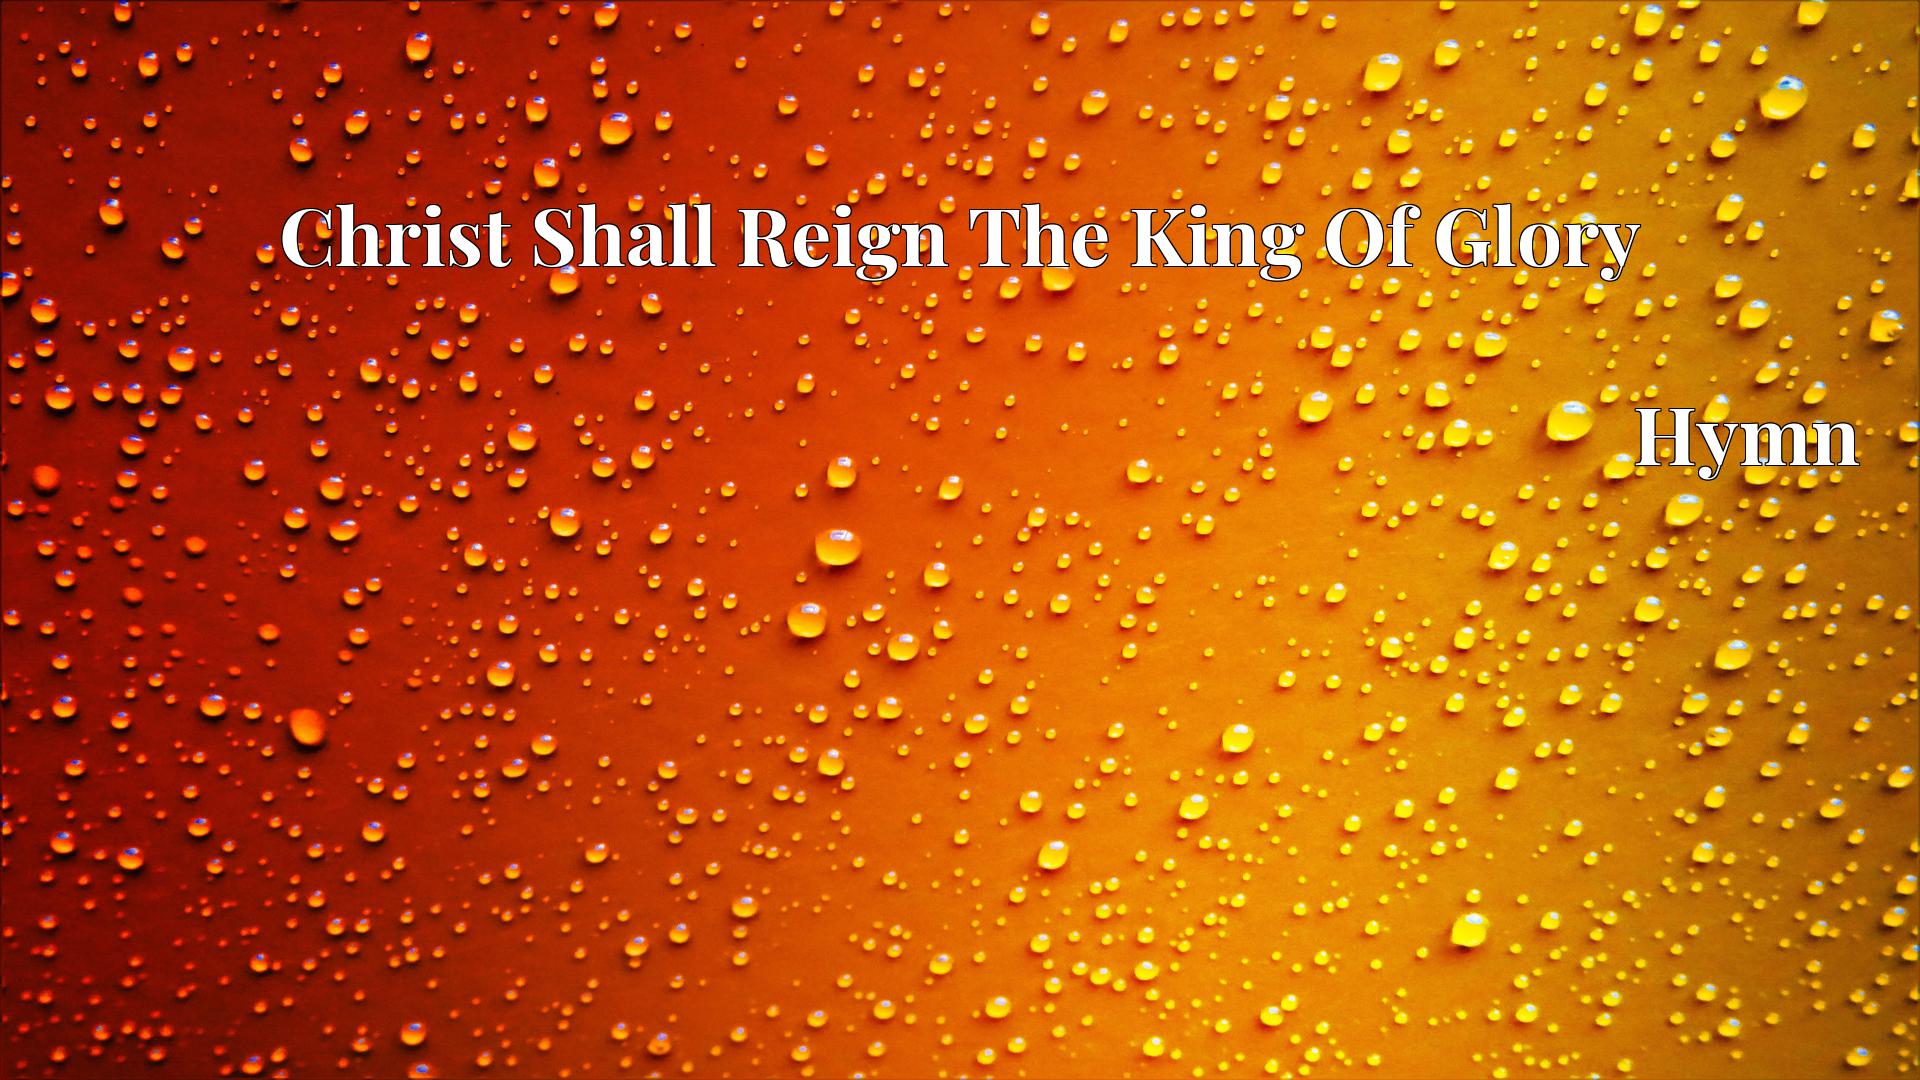 Christ Shall Reign The King Of Glory - Hymn